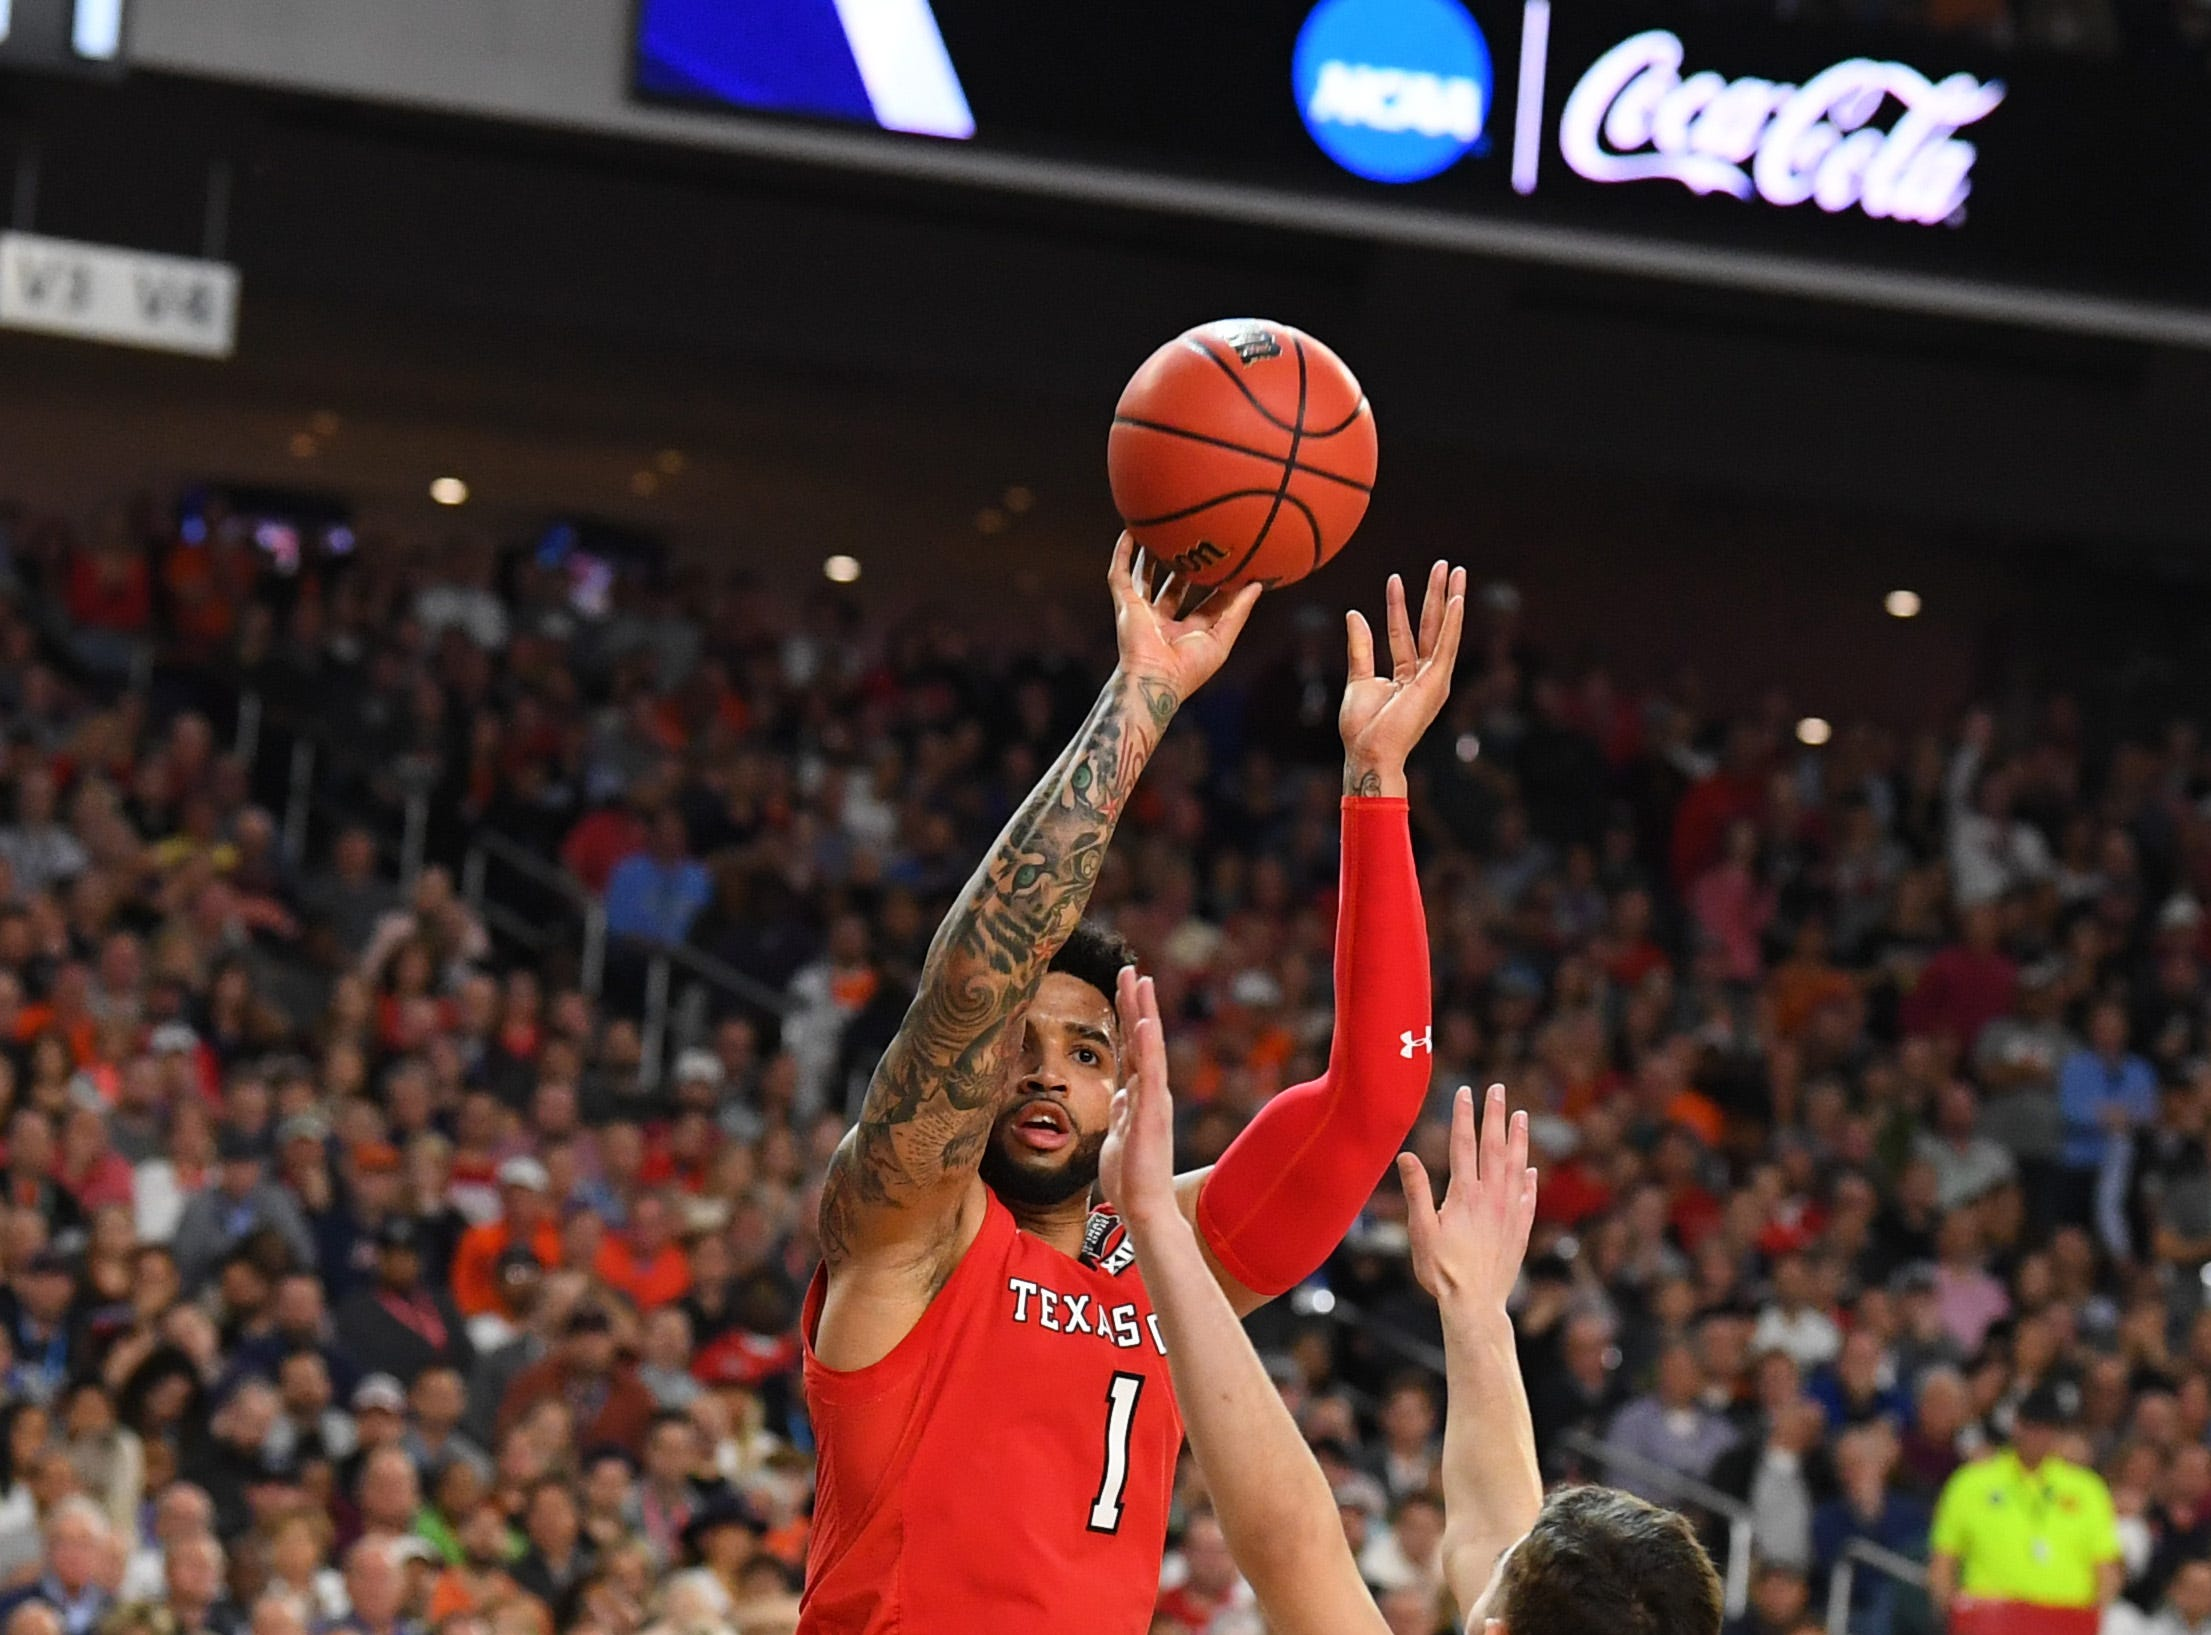 Apr 8, 2019; Minneapolis, MN, USA; Texas Tech Red Raiders guard Brandone Francis (1) shoots the ball over Virginia Cavaliers guard Ty Jerome (11) in the championship game of the 2019 men's Final Four at US Bank Stadium. Mandatory Credit: Robert Deutsch-USA TODAY Sports